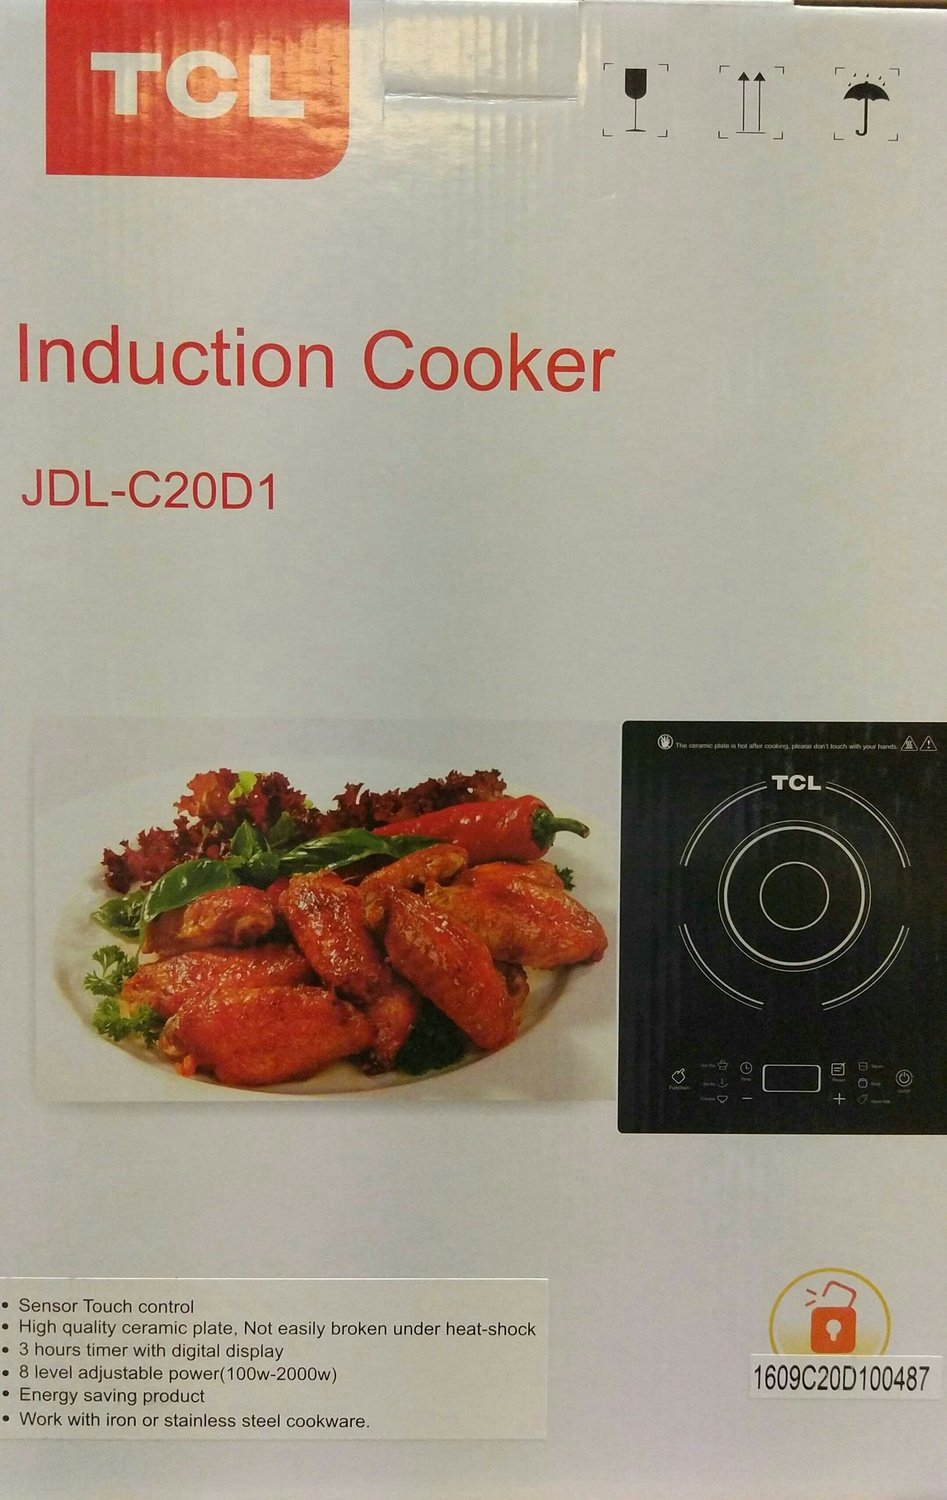 TCL Induction Cooker